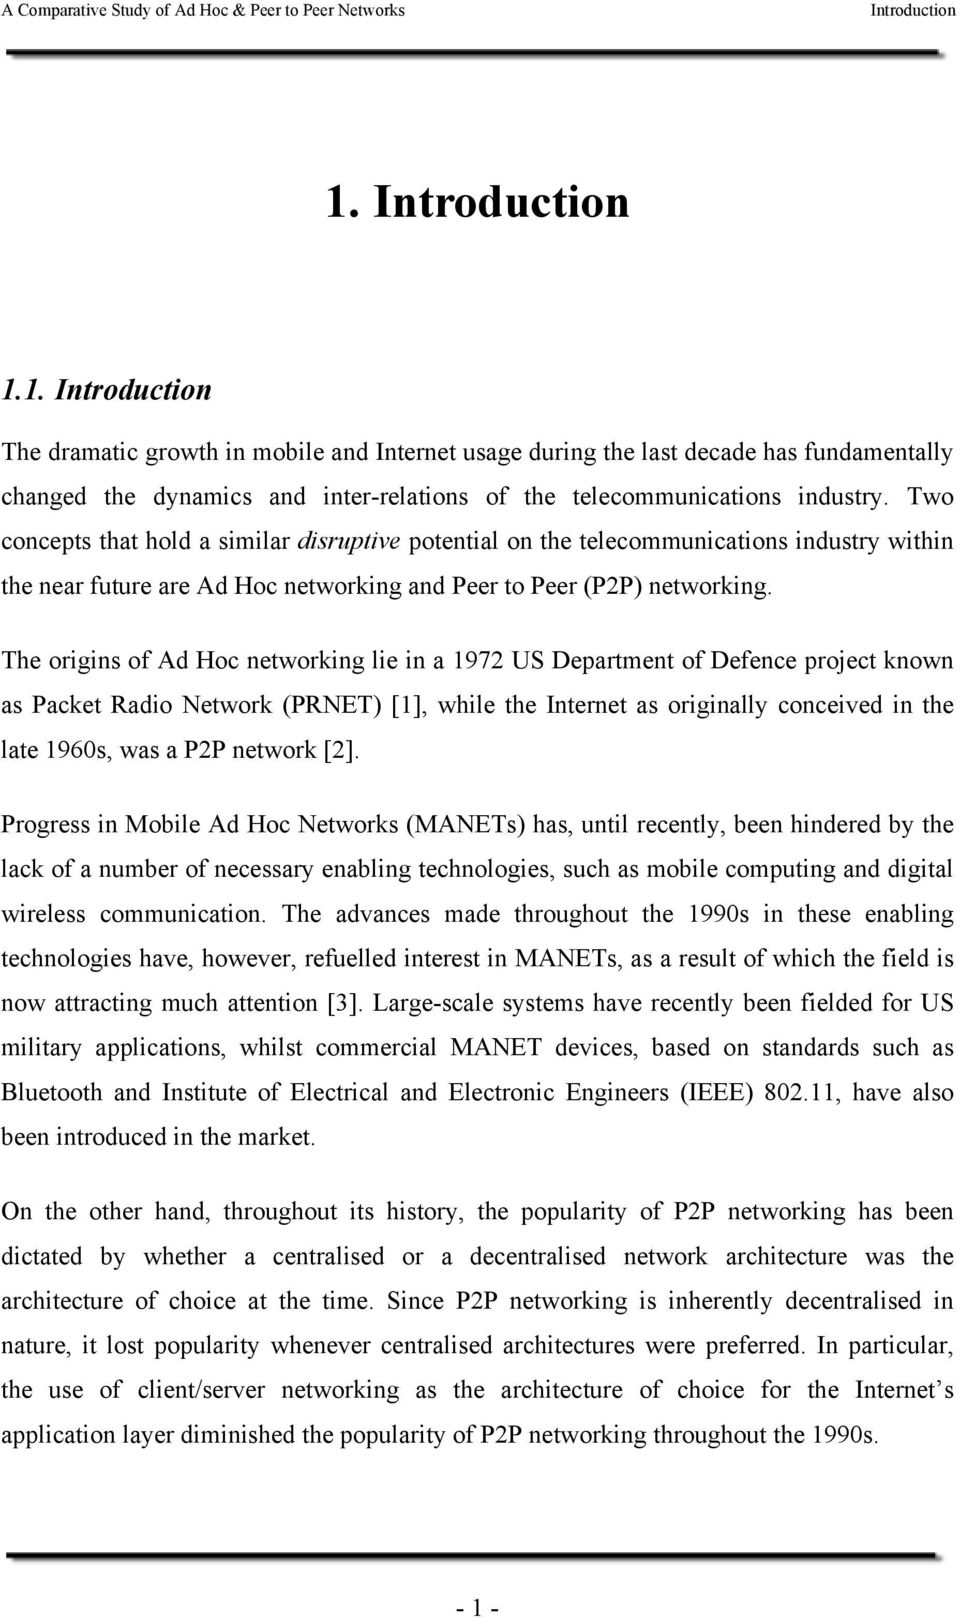 The origins of Ad Hoc networking lie in a 1972 US Department of Defence project known as Packet Radio Network (PRNET) [1], while the Internet as originally conceived in the late 1960s, was a P2P